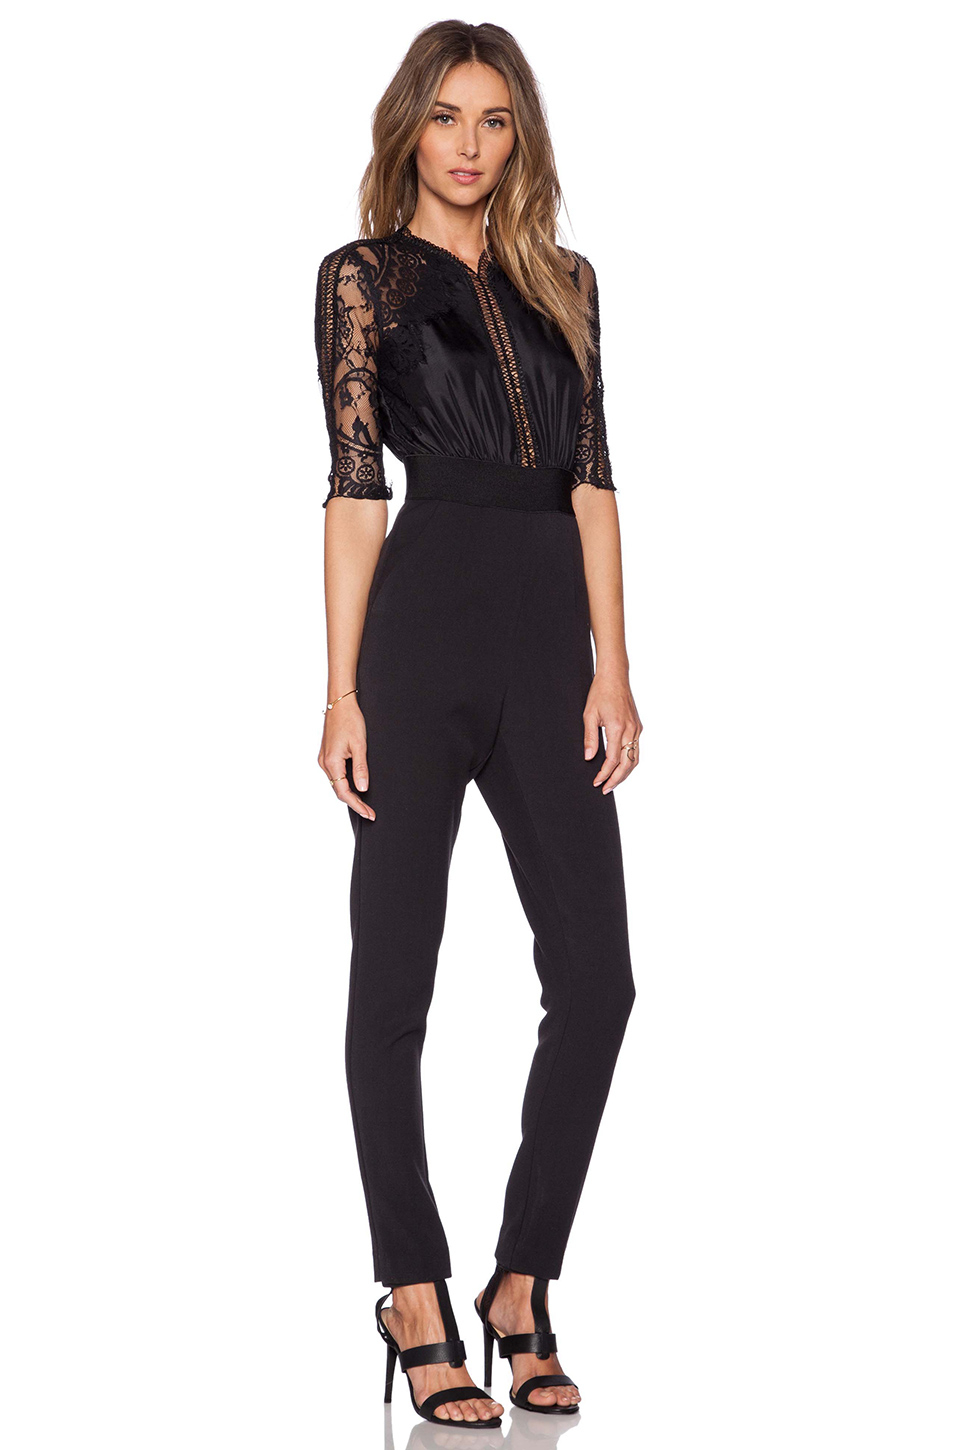 Shop rompers and jumpsuits for women in all colors including black and white. Business and casual styles that are cheap in price, high in fashion.